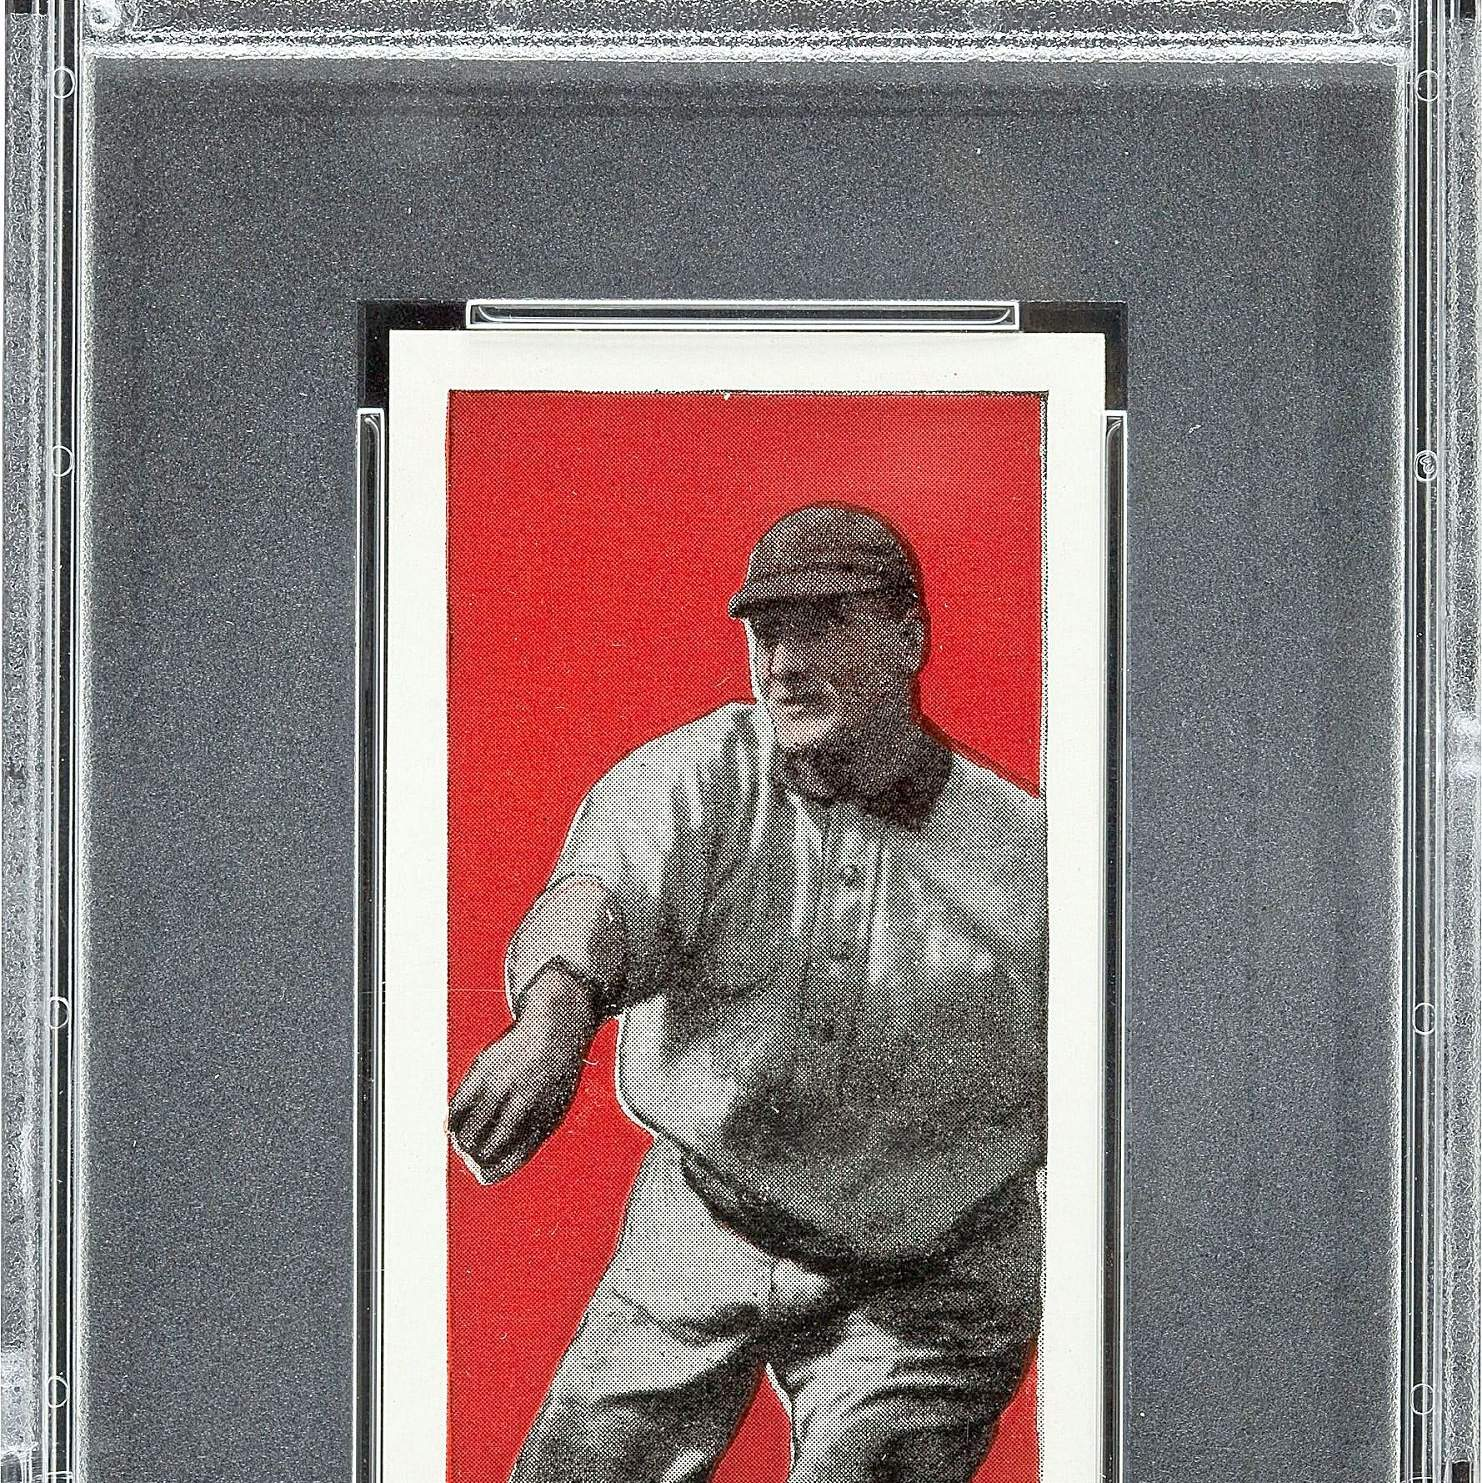 Baseball Cards Forgotten In Attic May Fetch Millions